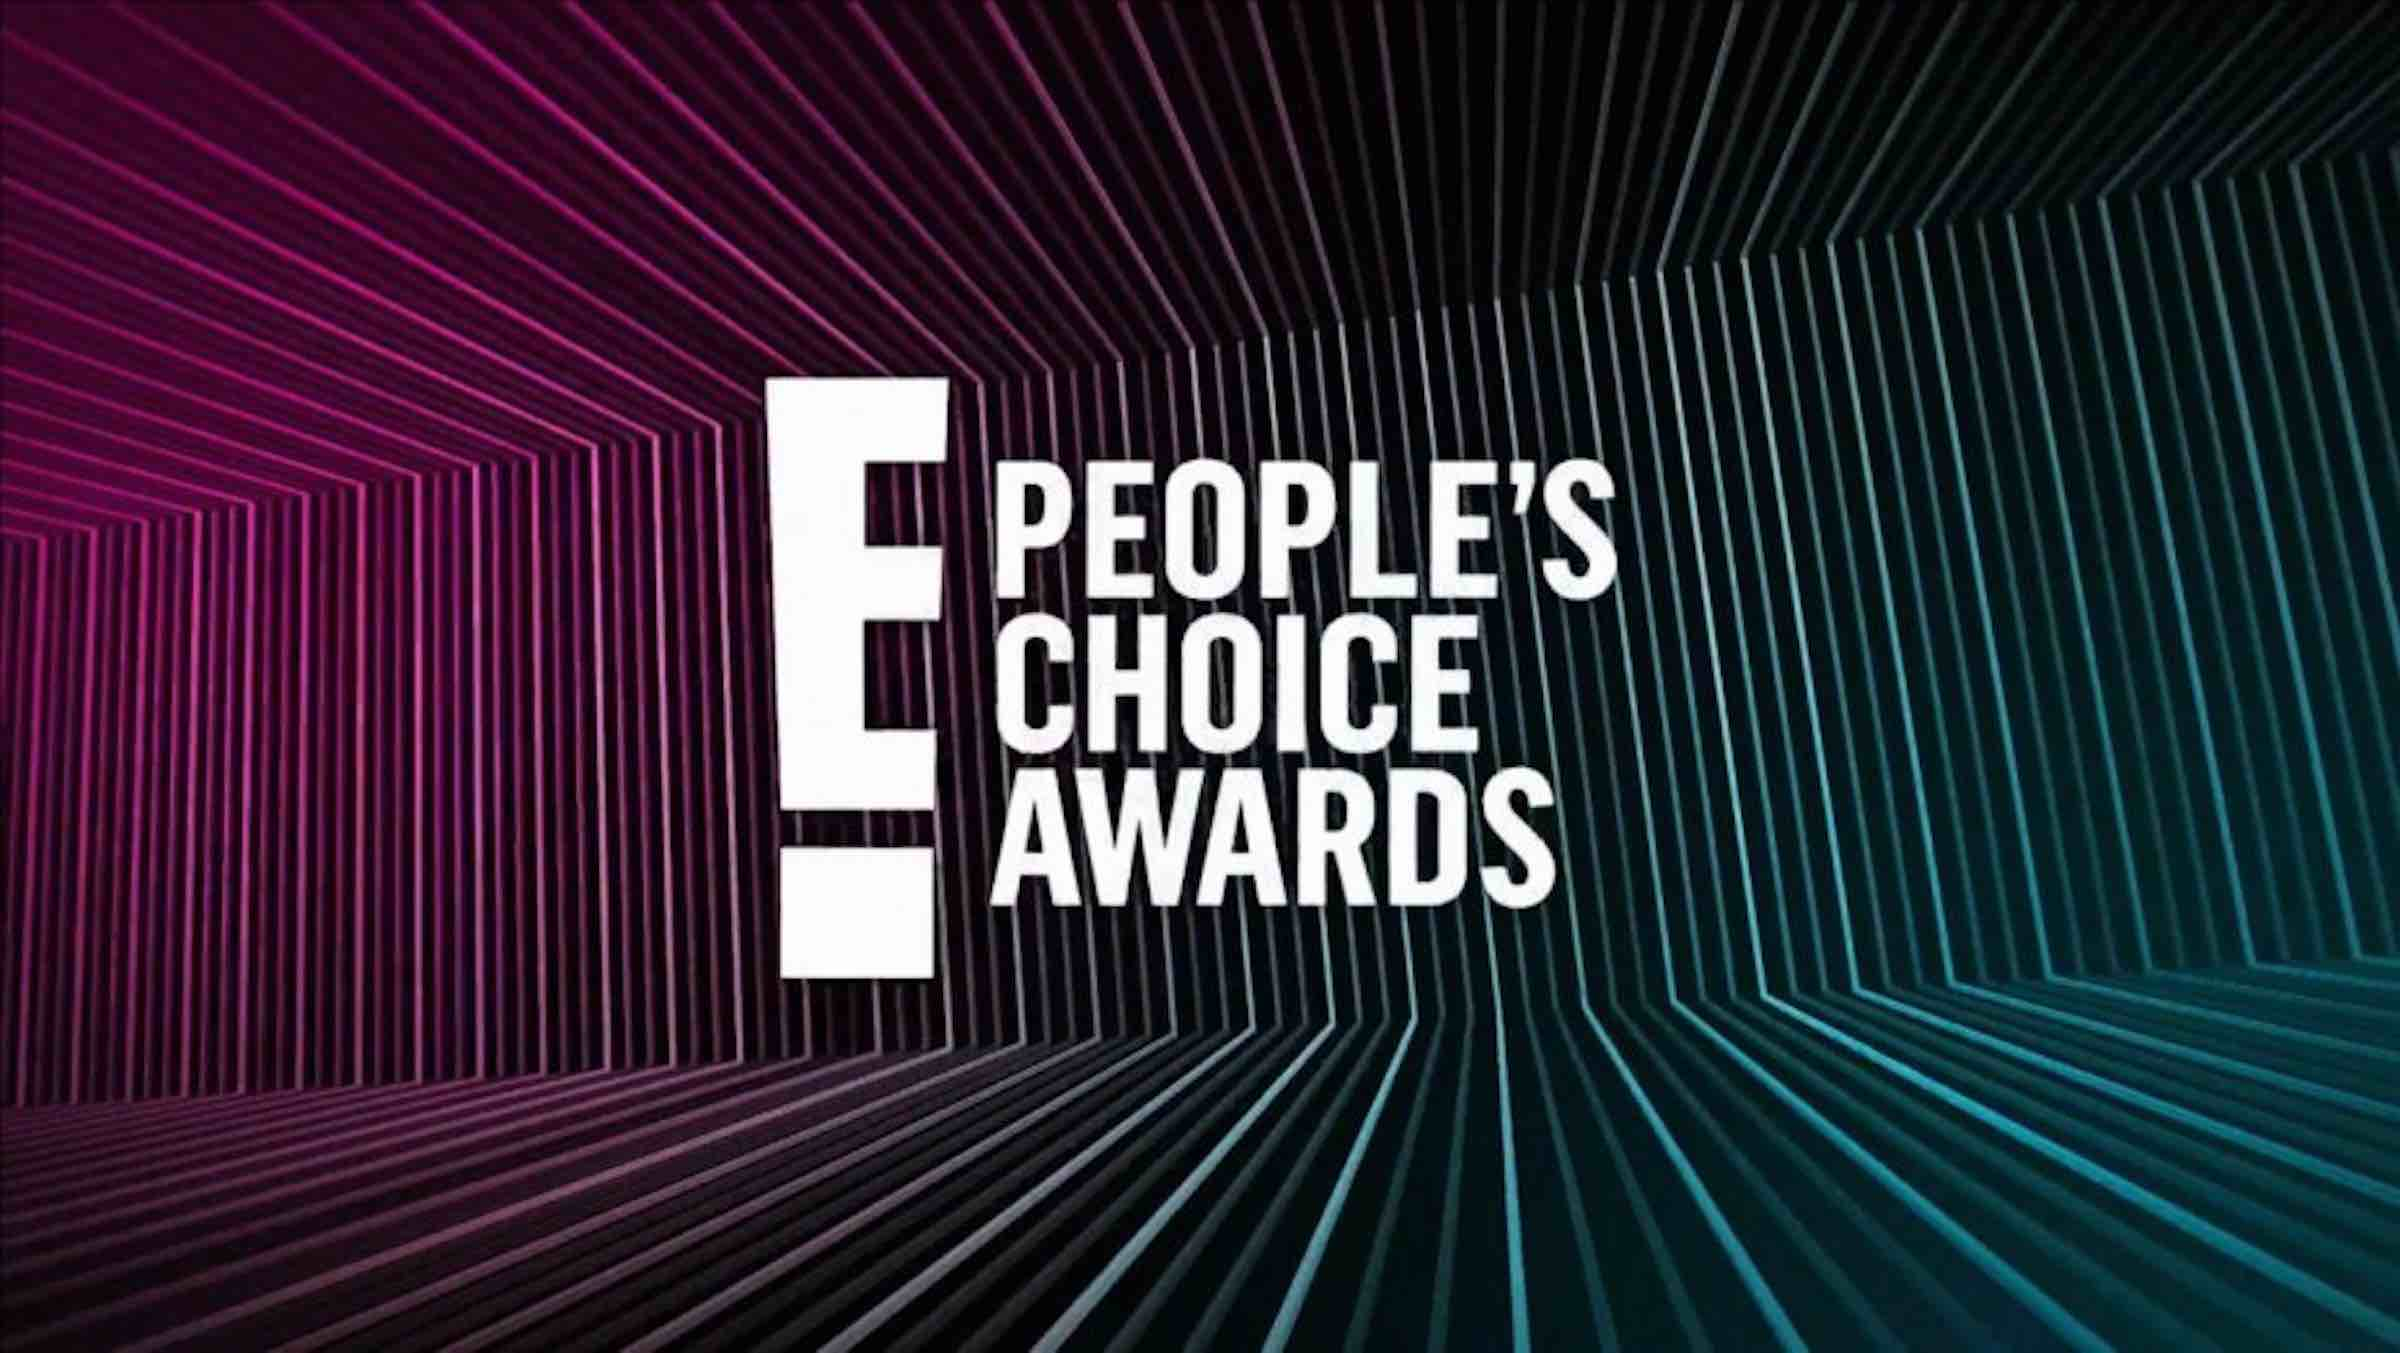 Involved in a fandom? Let your fingers do the voting and nominate your faves in the E! People's Choice Awards. Here's our guide to making your nominations.